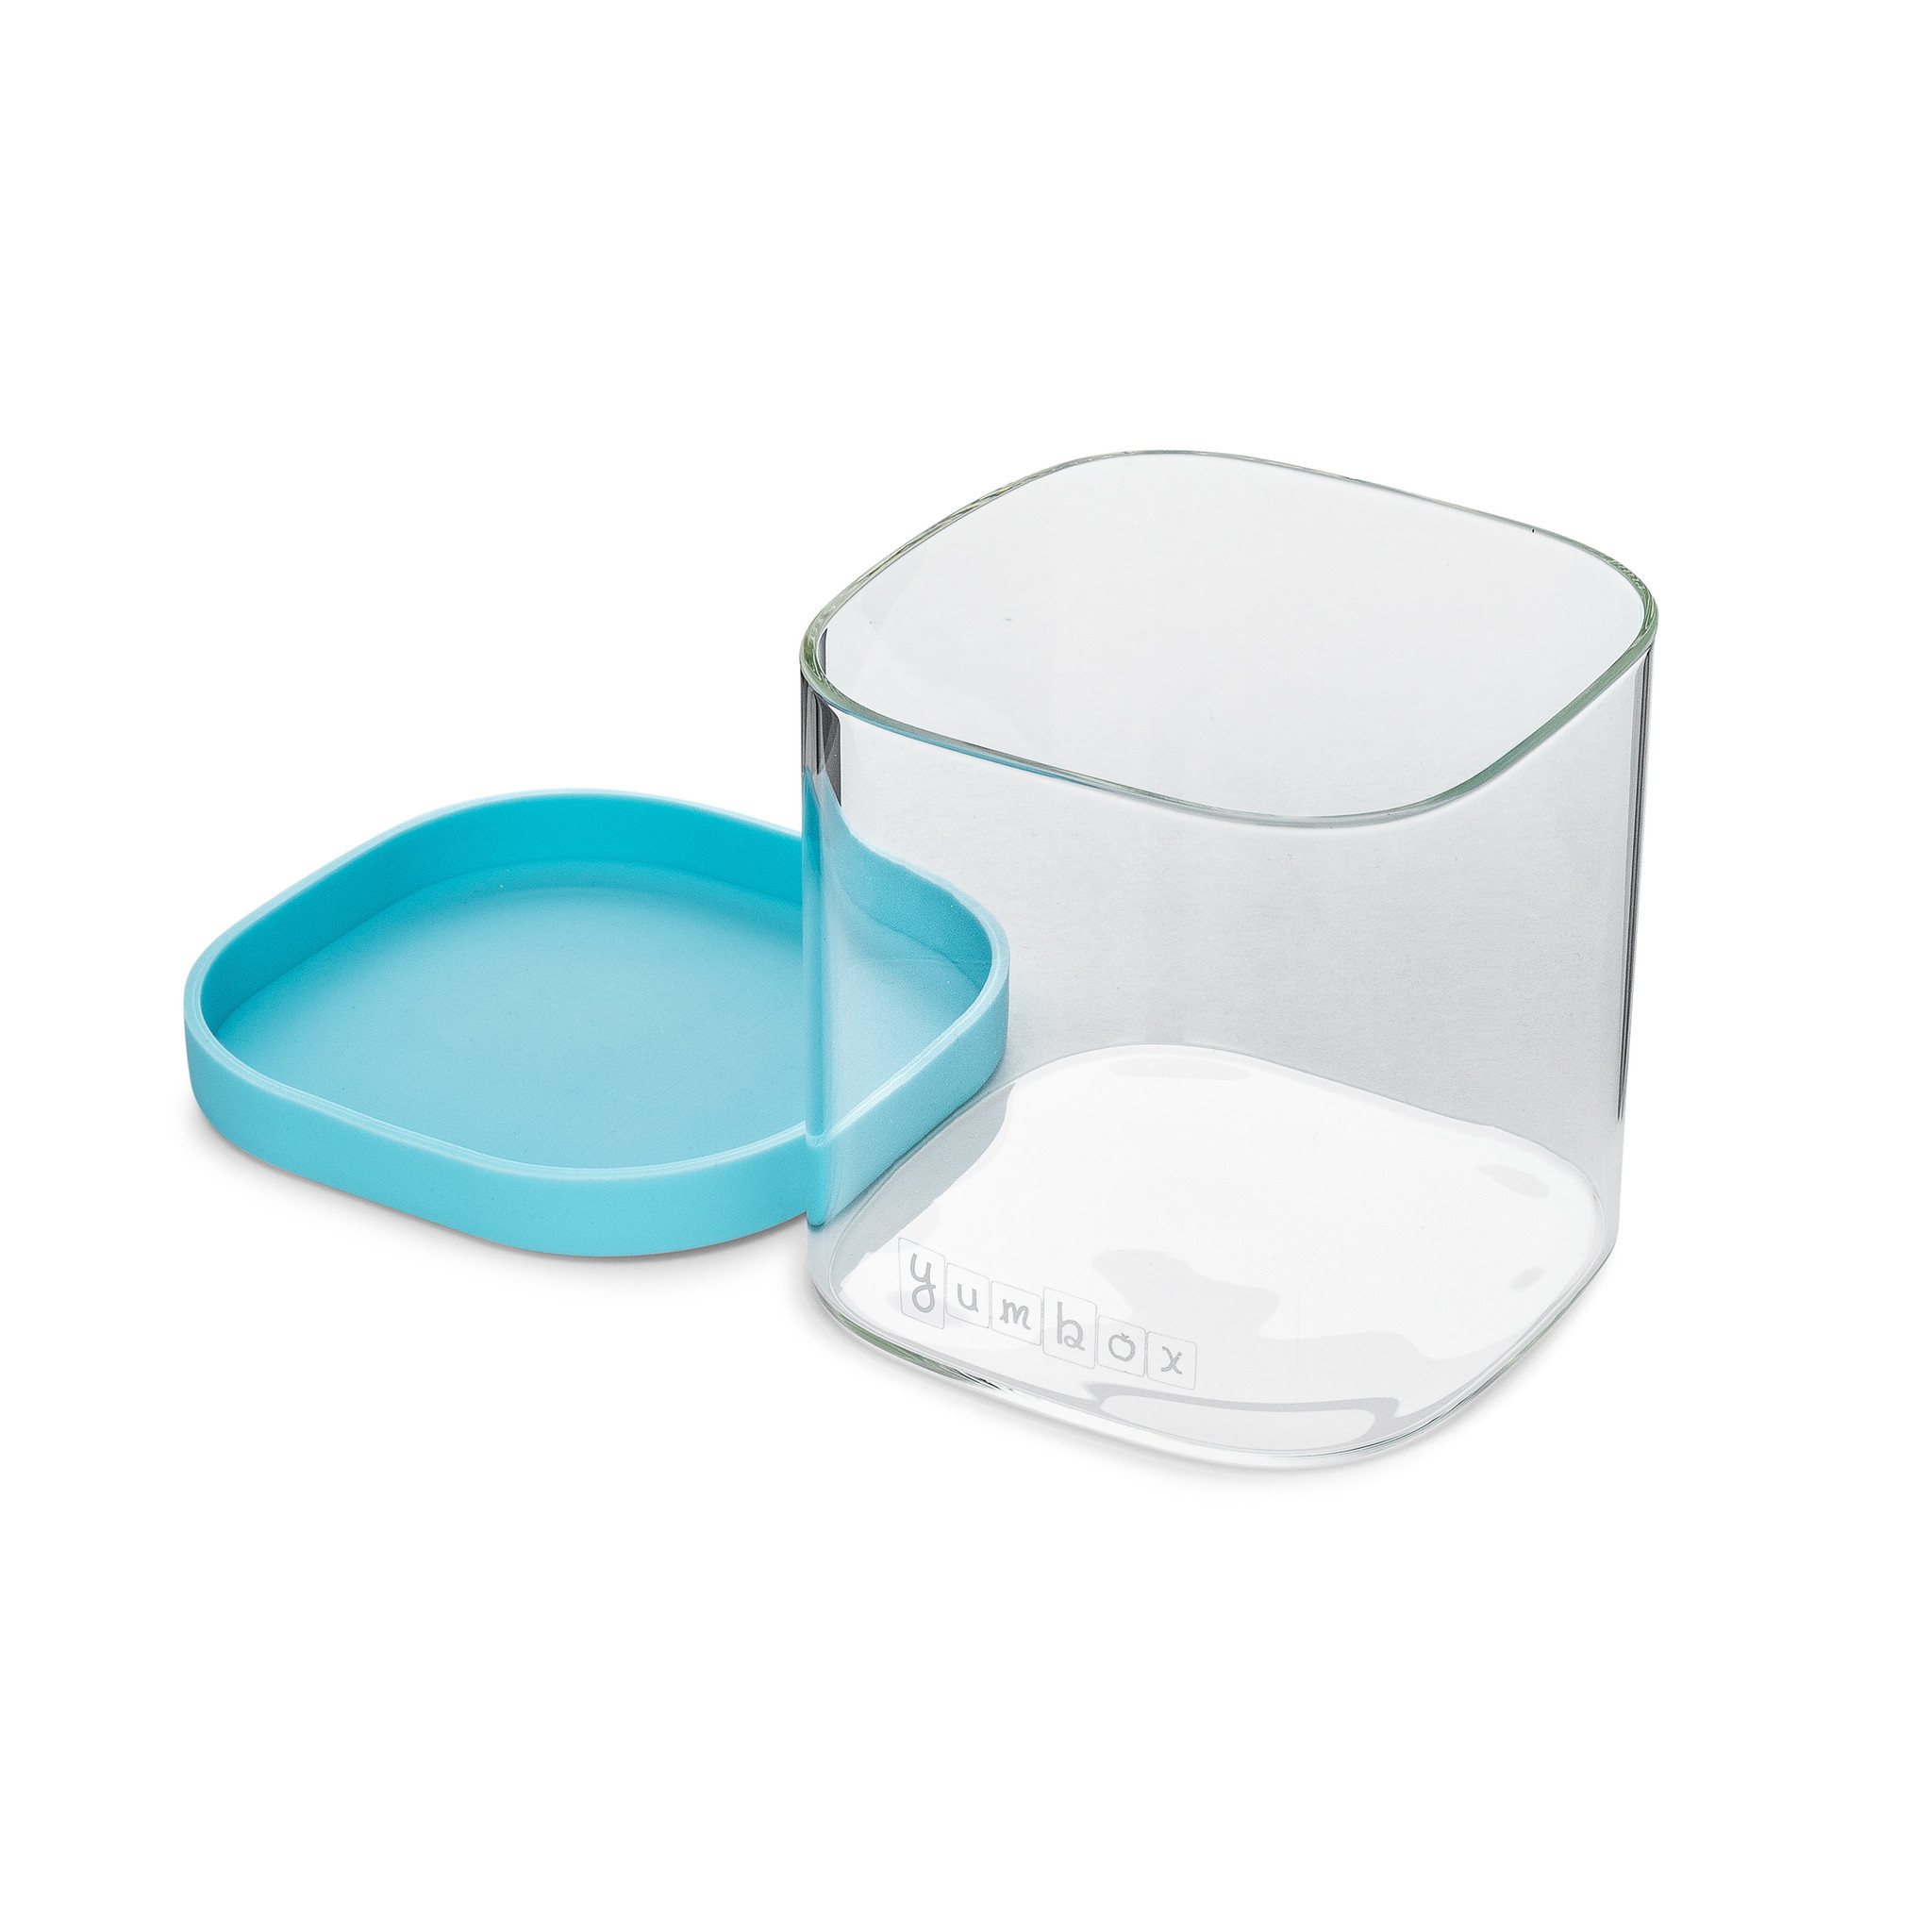 Yumbox Chop chop Replacement glass cube-1